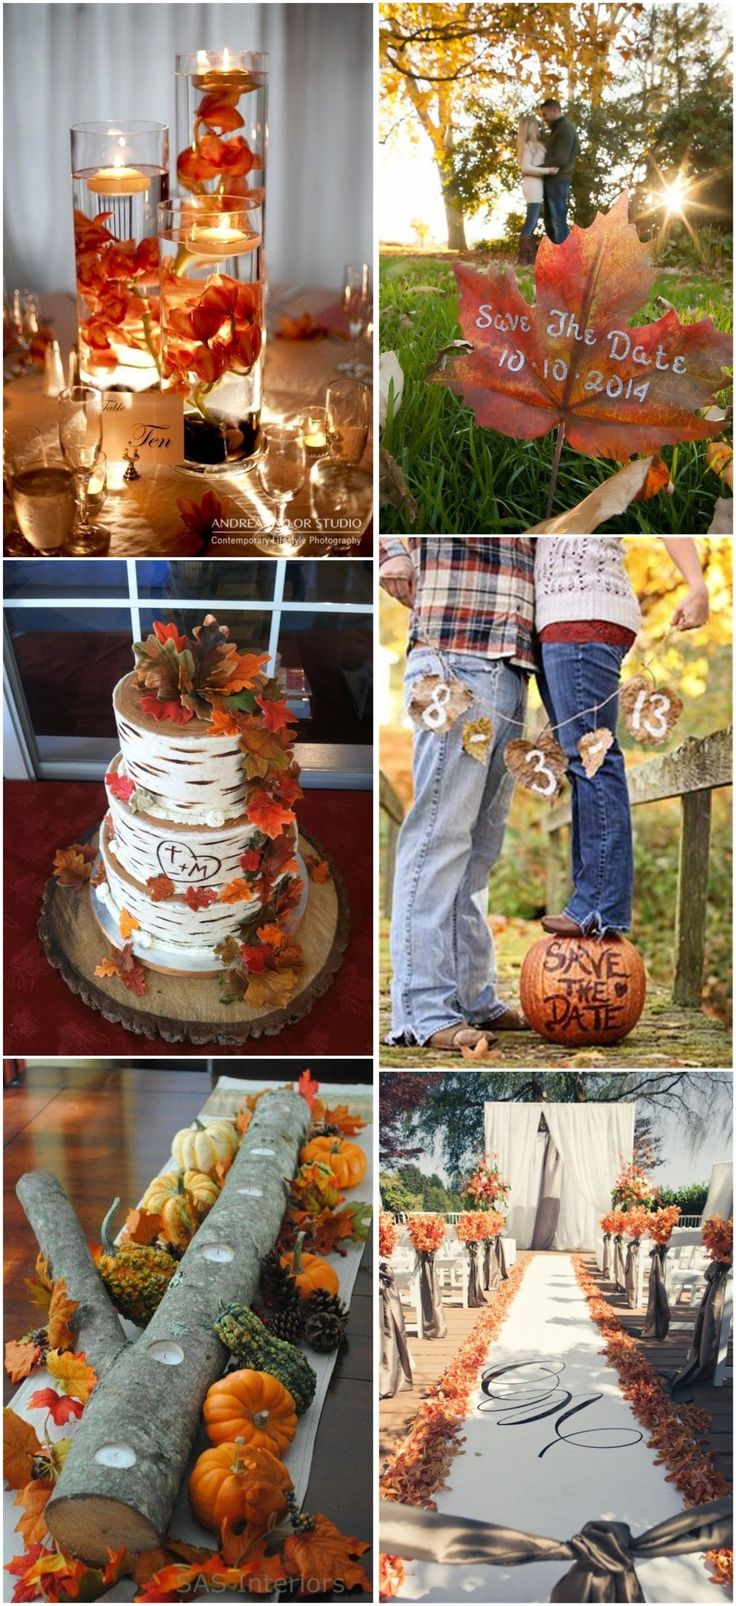 3 Easy Diy Storage Ideas For Small Kitchen: 17 Best Ideas About Fall Wedding Cakes On Pinterest